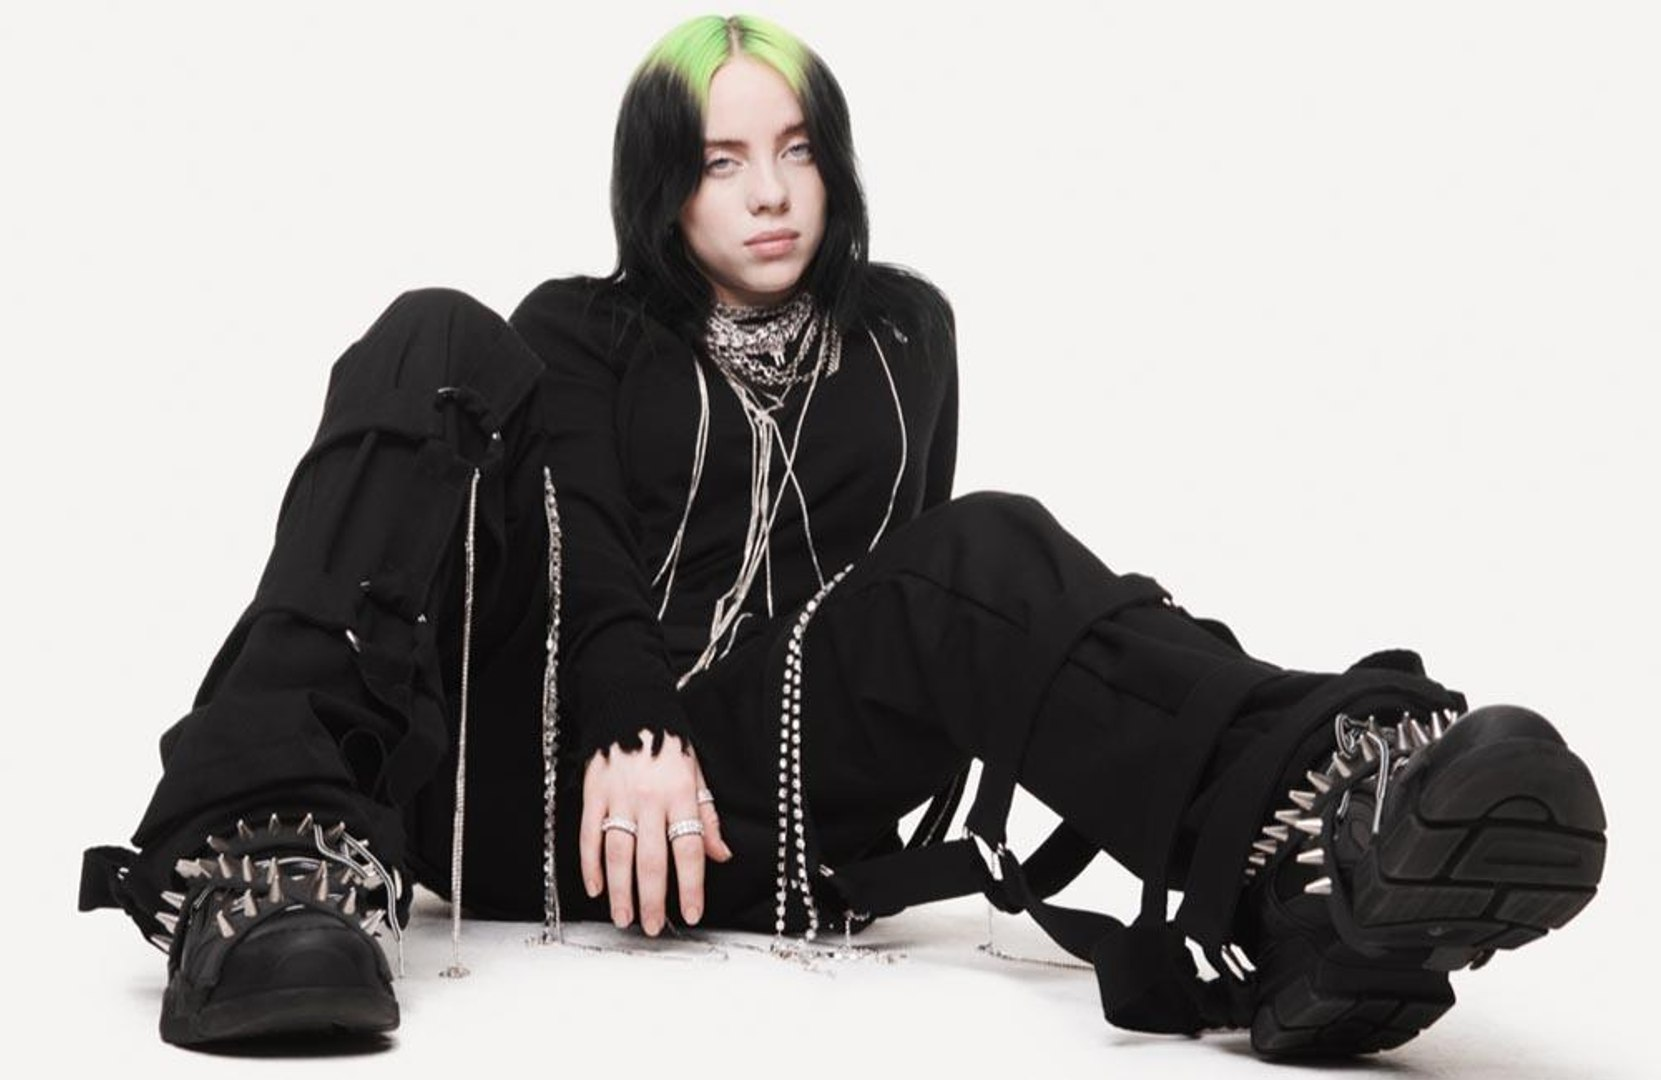 Billie Eilish wins three of the first-ever Apple Music Awards